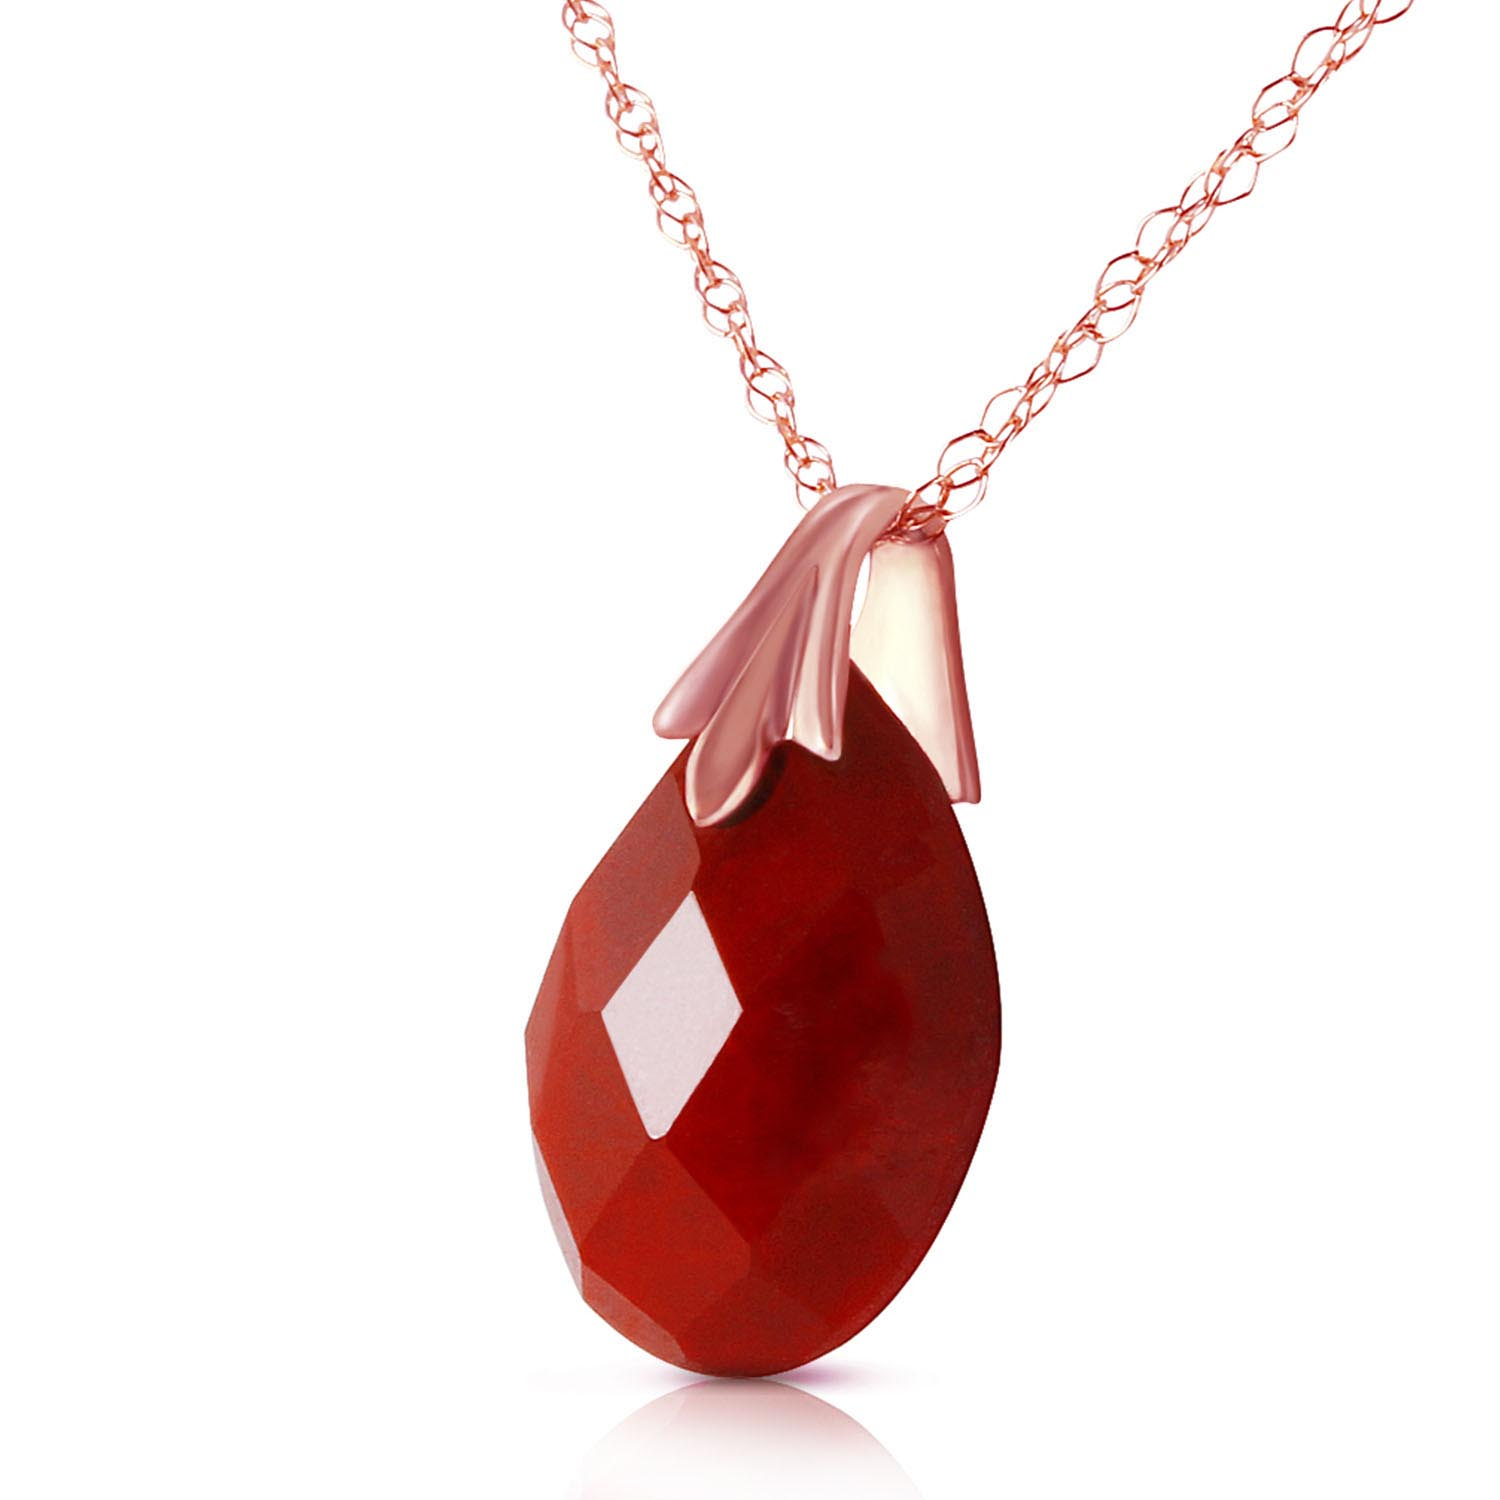 Ruby Briolette Pendant Necklace 4.0ct in 14K Rose Gold